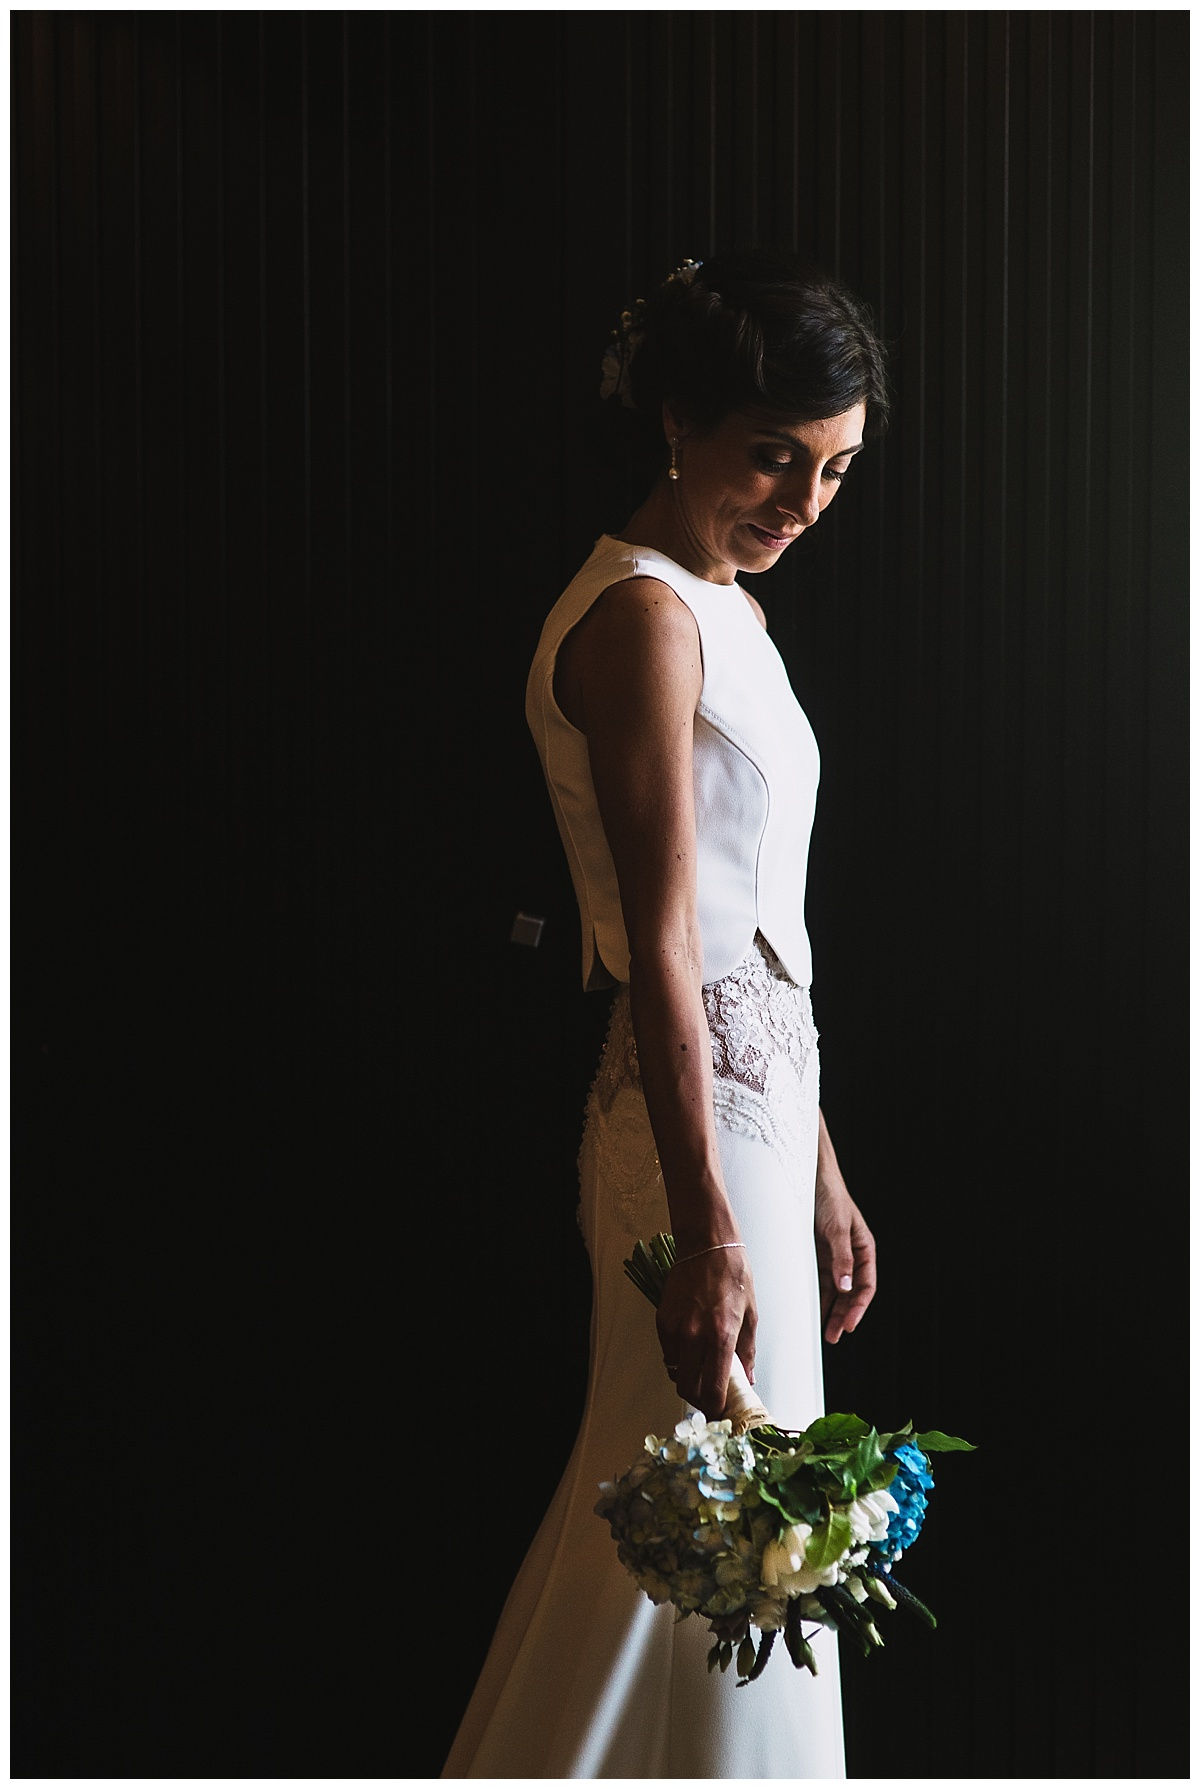 Wedding Photography Madrid - Finca Fuentepizarro - Buenavista and Co.